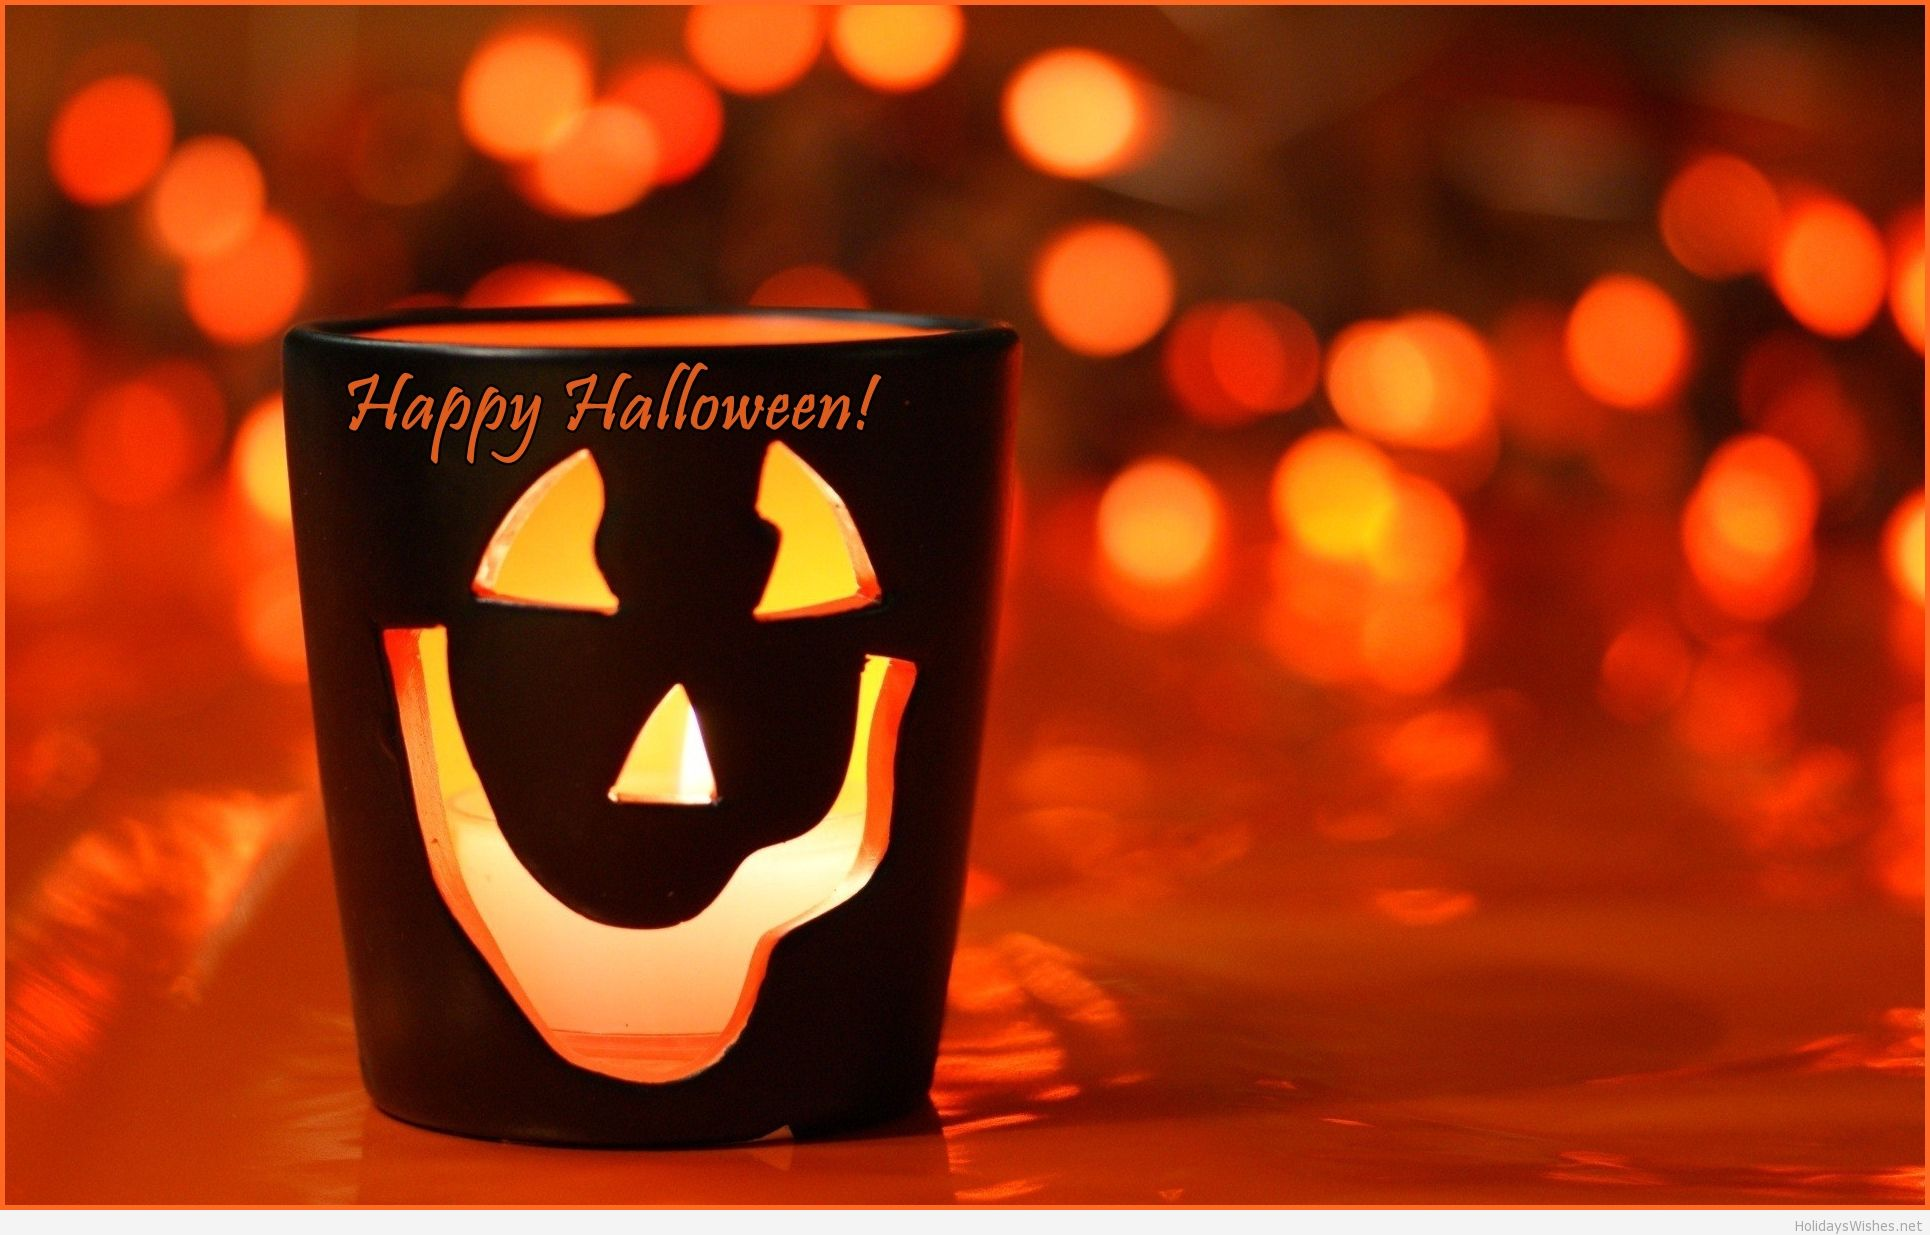 Happy-Halloween-Mug-picture